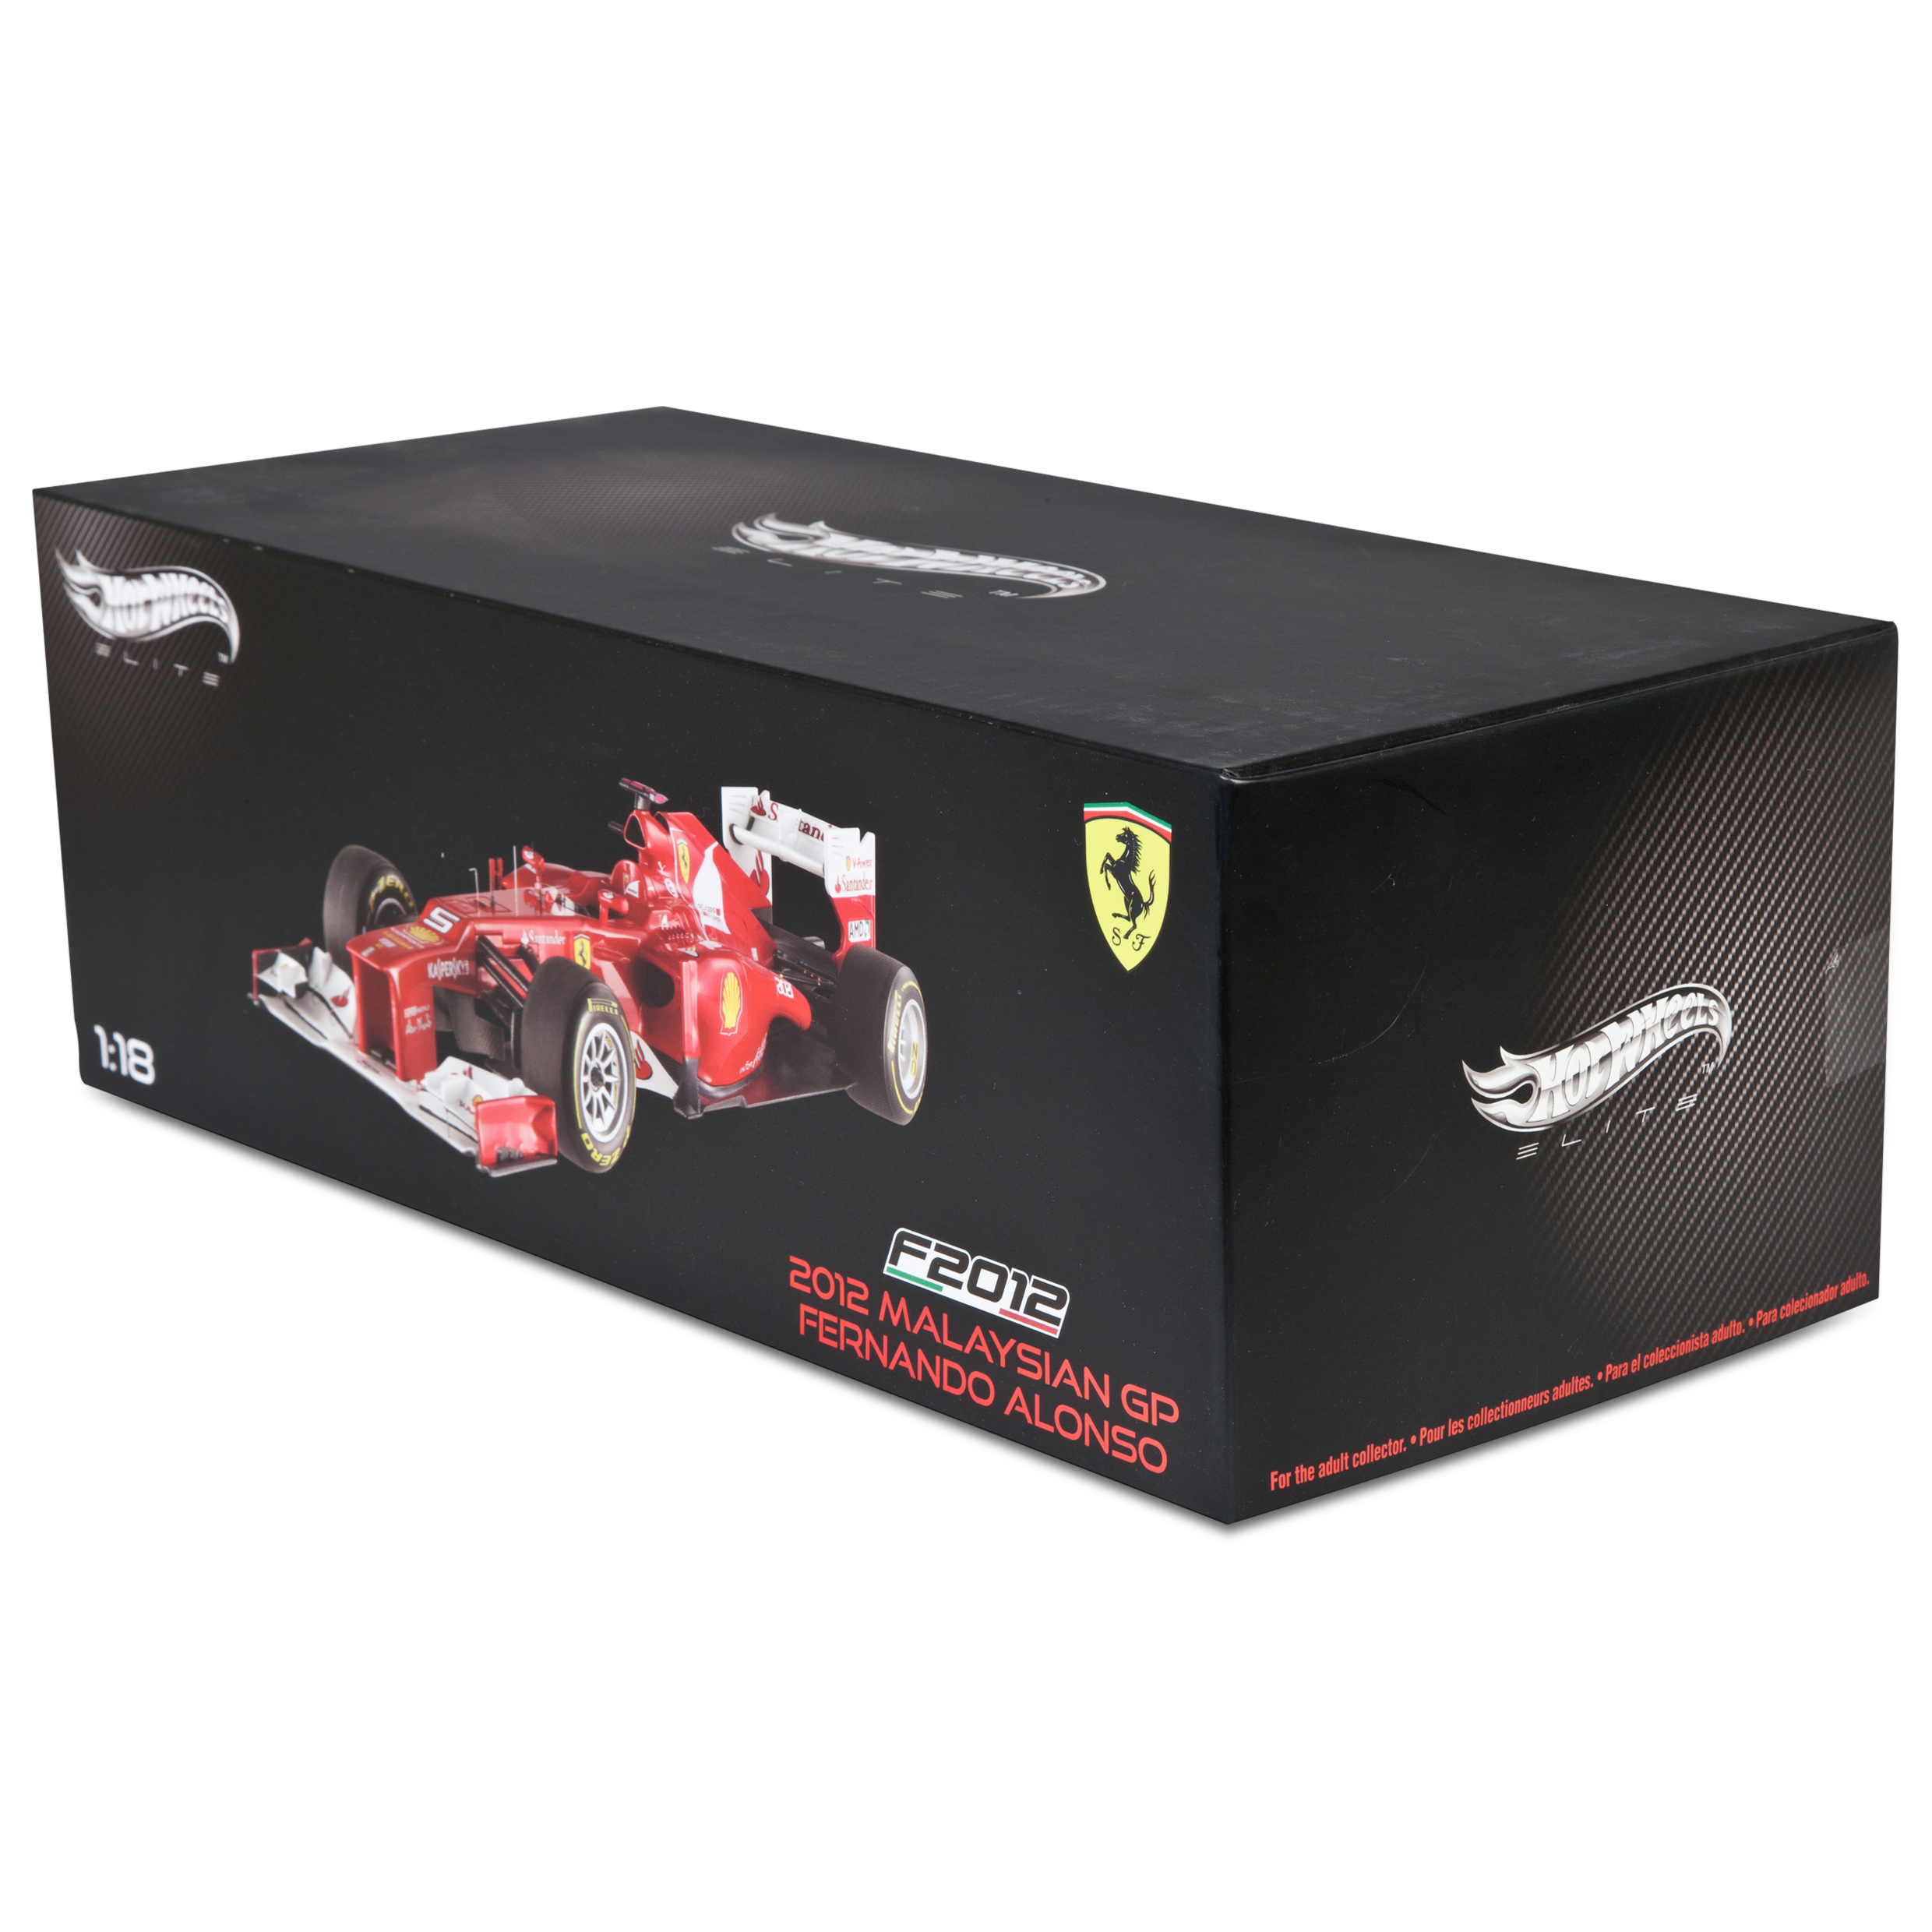 Scuderia Ferrari Scuderia F2012 - F. Alonso Super detailed version 1:18 Scale